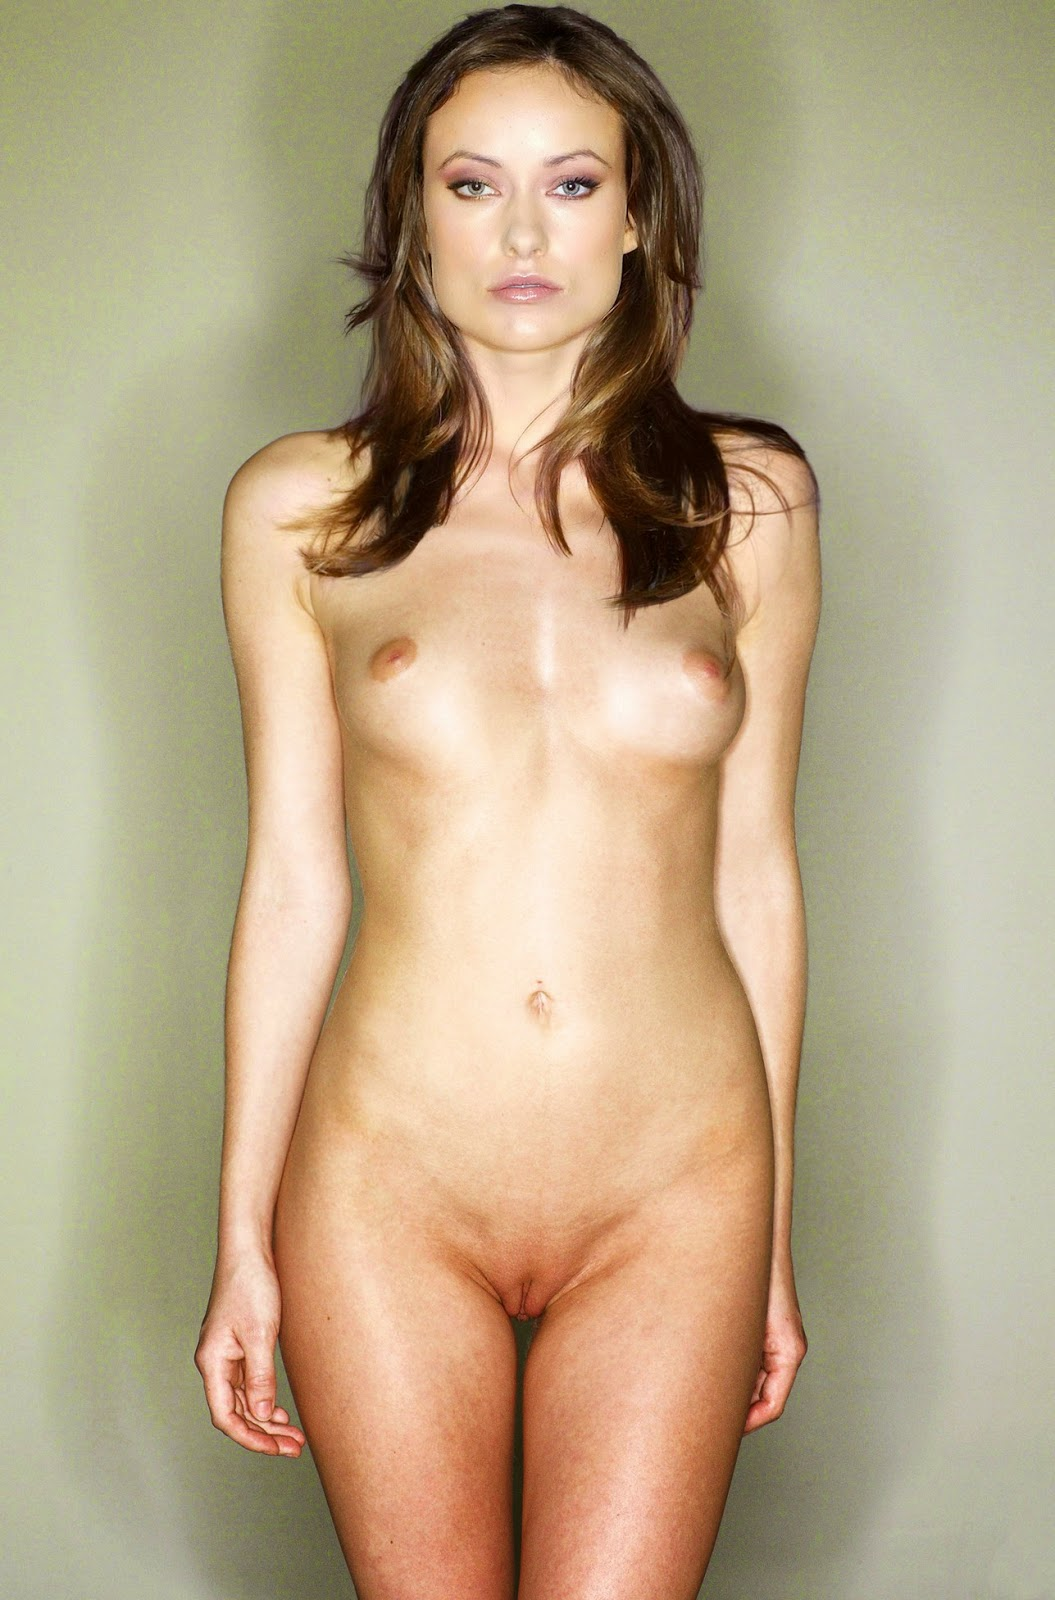 Thanks how Olivia wilde nude fakes tumblr something is